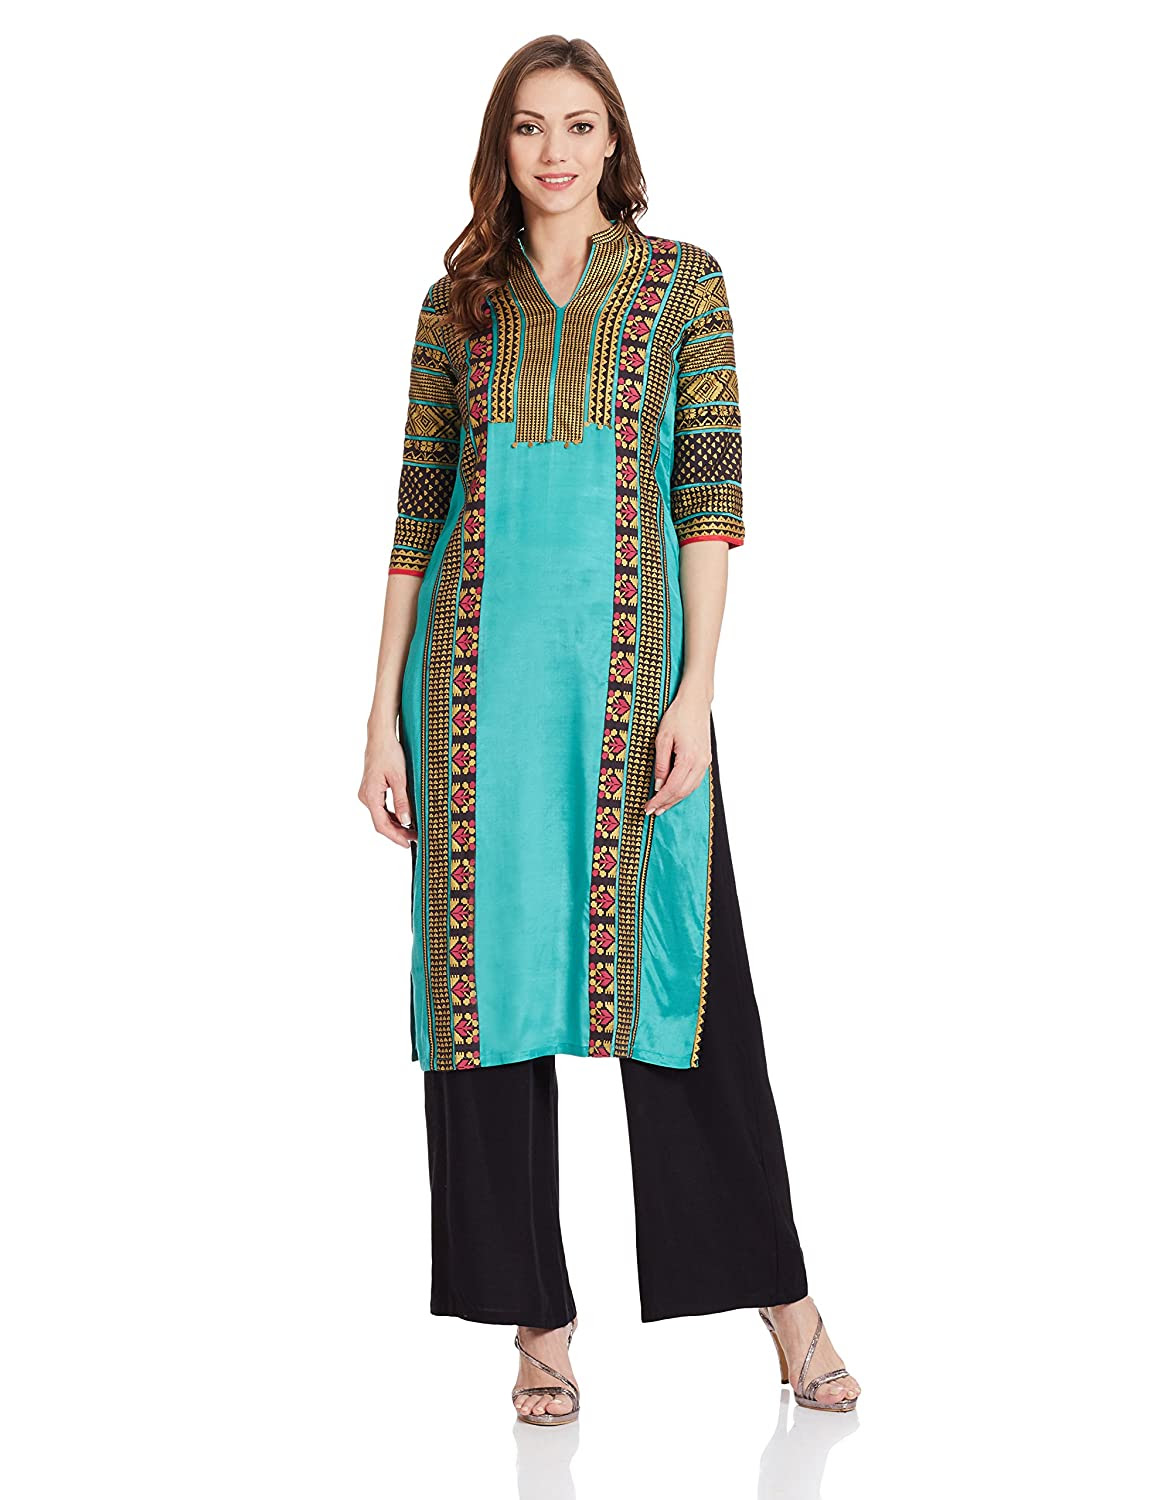 W for Woman Women's Straight Kurta